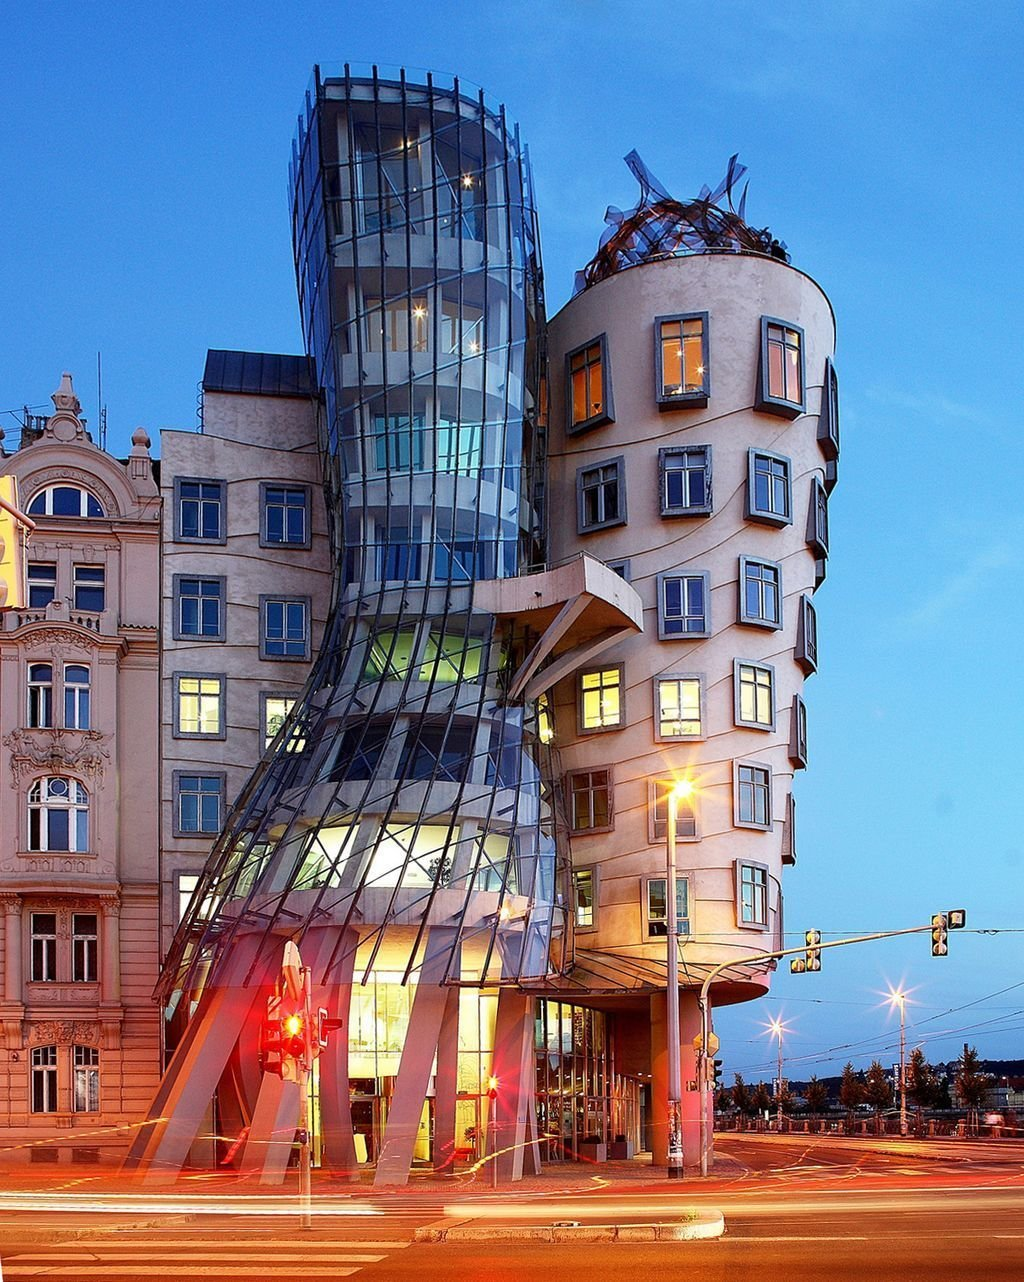 Genry's very non-traditional design of Dancing House was controversial at the time because the house stands out among the Baroque, Gothic and Art Nouveau buildings for which Prague is famous, and in the opinion of some it does not accord well with these architectural styles. The then Czech president, Václav Havel, who lived for decades next to the site, avidly supported this project, however, hoping that the building would become a center of cultural activity.  Photo 12 of 14 in 13 Iconic Buildings Designed by Frank Gehry